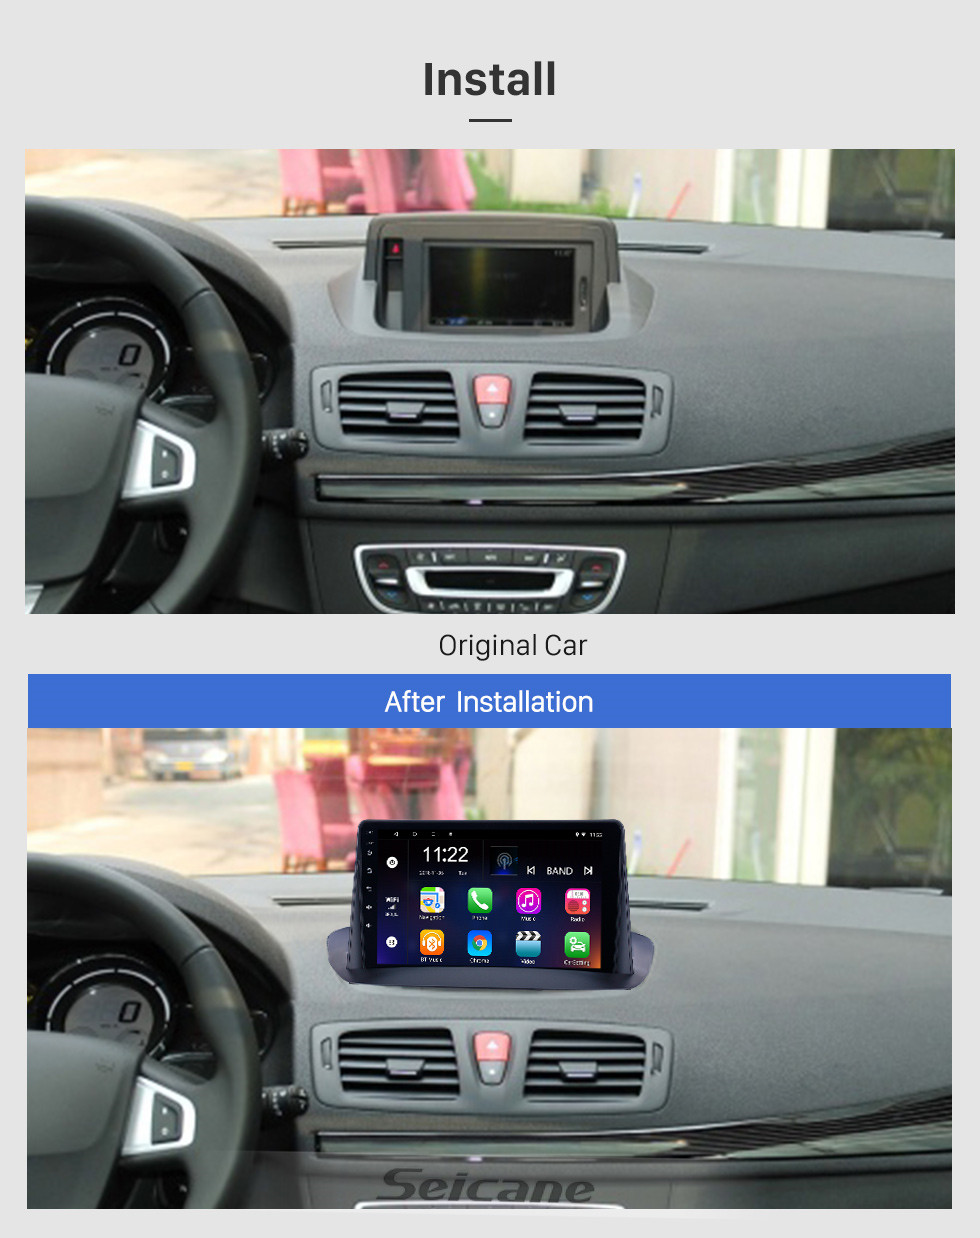 Seicane Android 10.0 9 inch HD Touchscreen GPS Navigation Radio for 2009-2014 Renault Megane 3 with Bluetooth WIFI support Carplay SWC